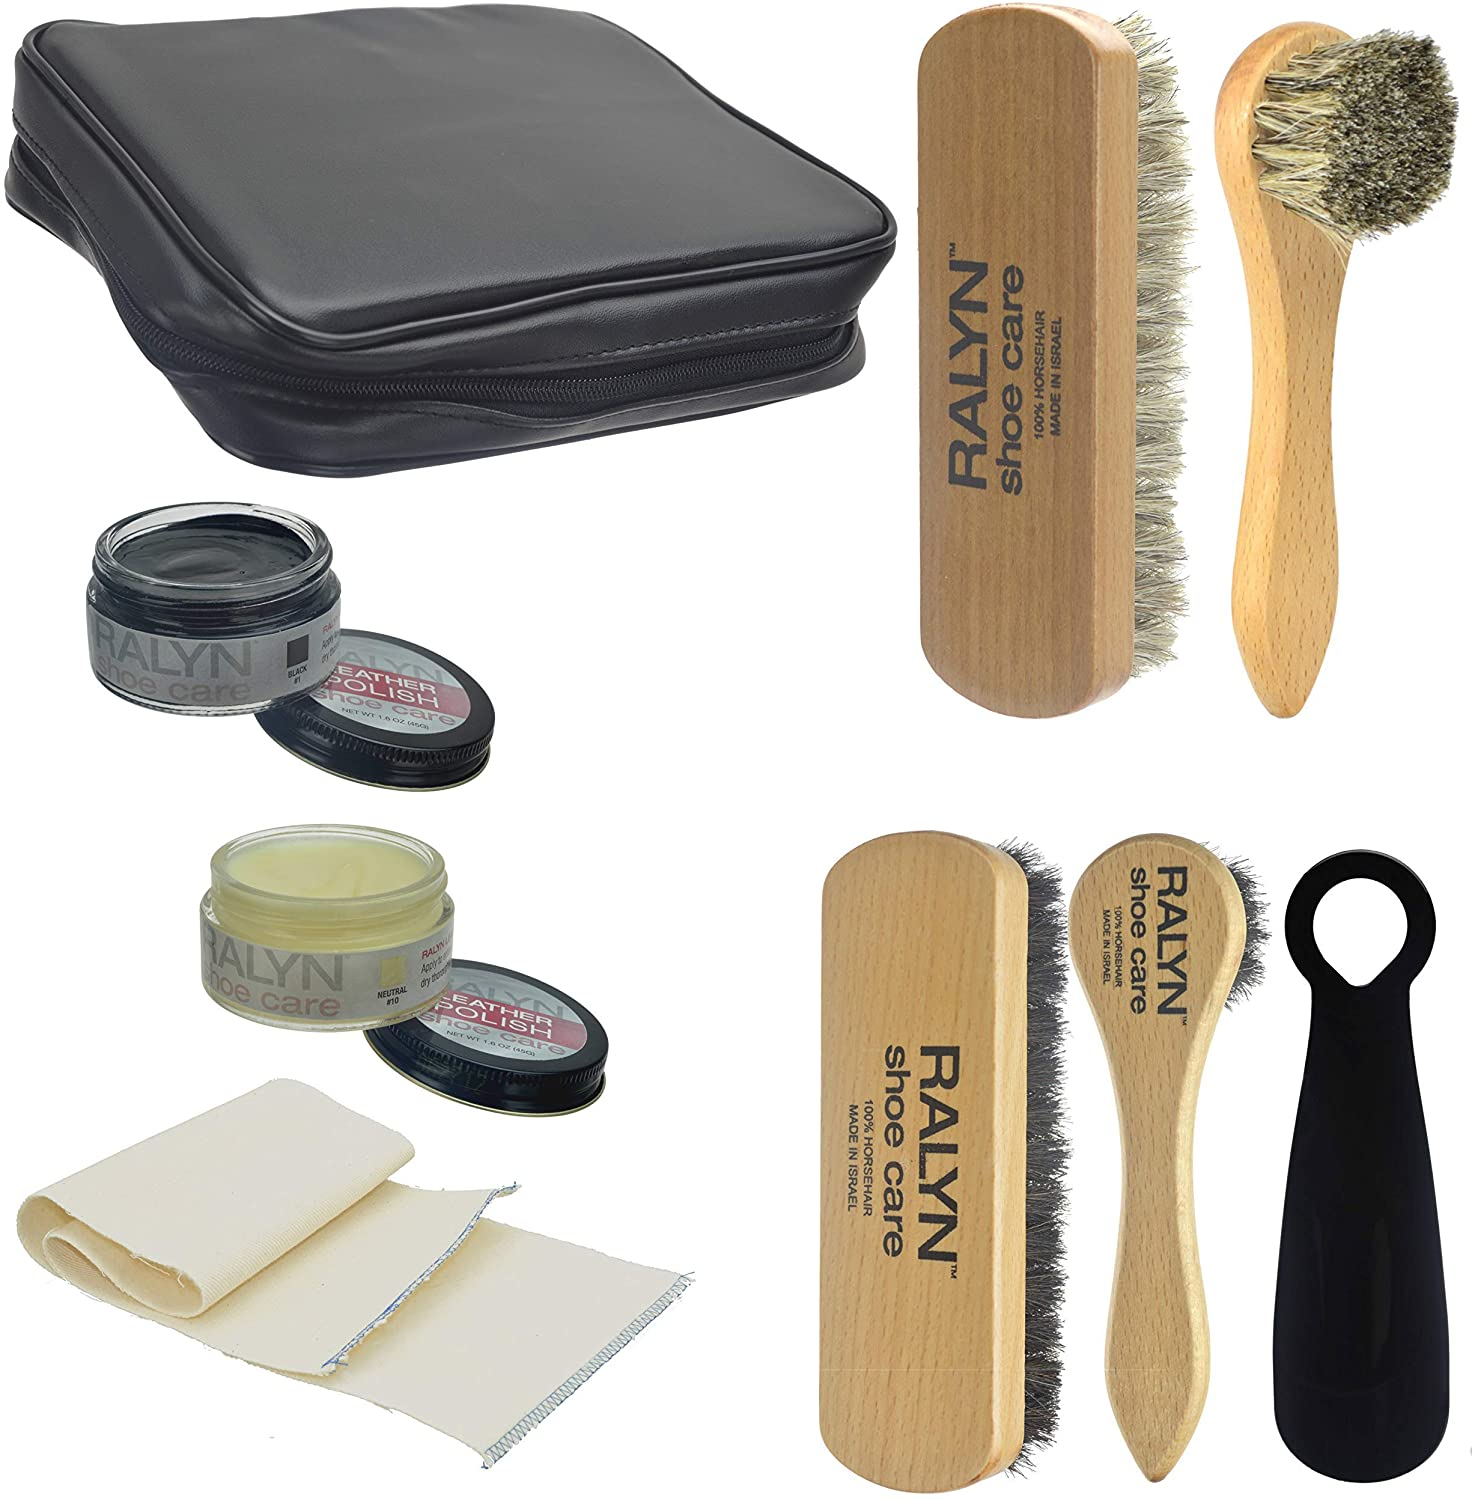 Ralyn Deluxe Shoe Shine Kit 8 Pcs. With Pouch Travel Size Shine kit With Polish.